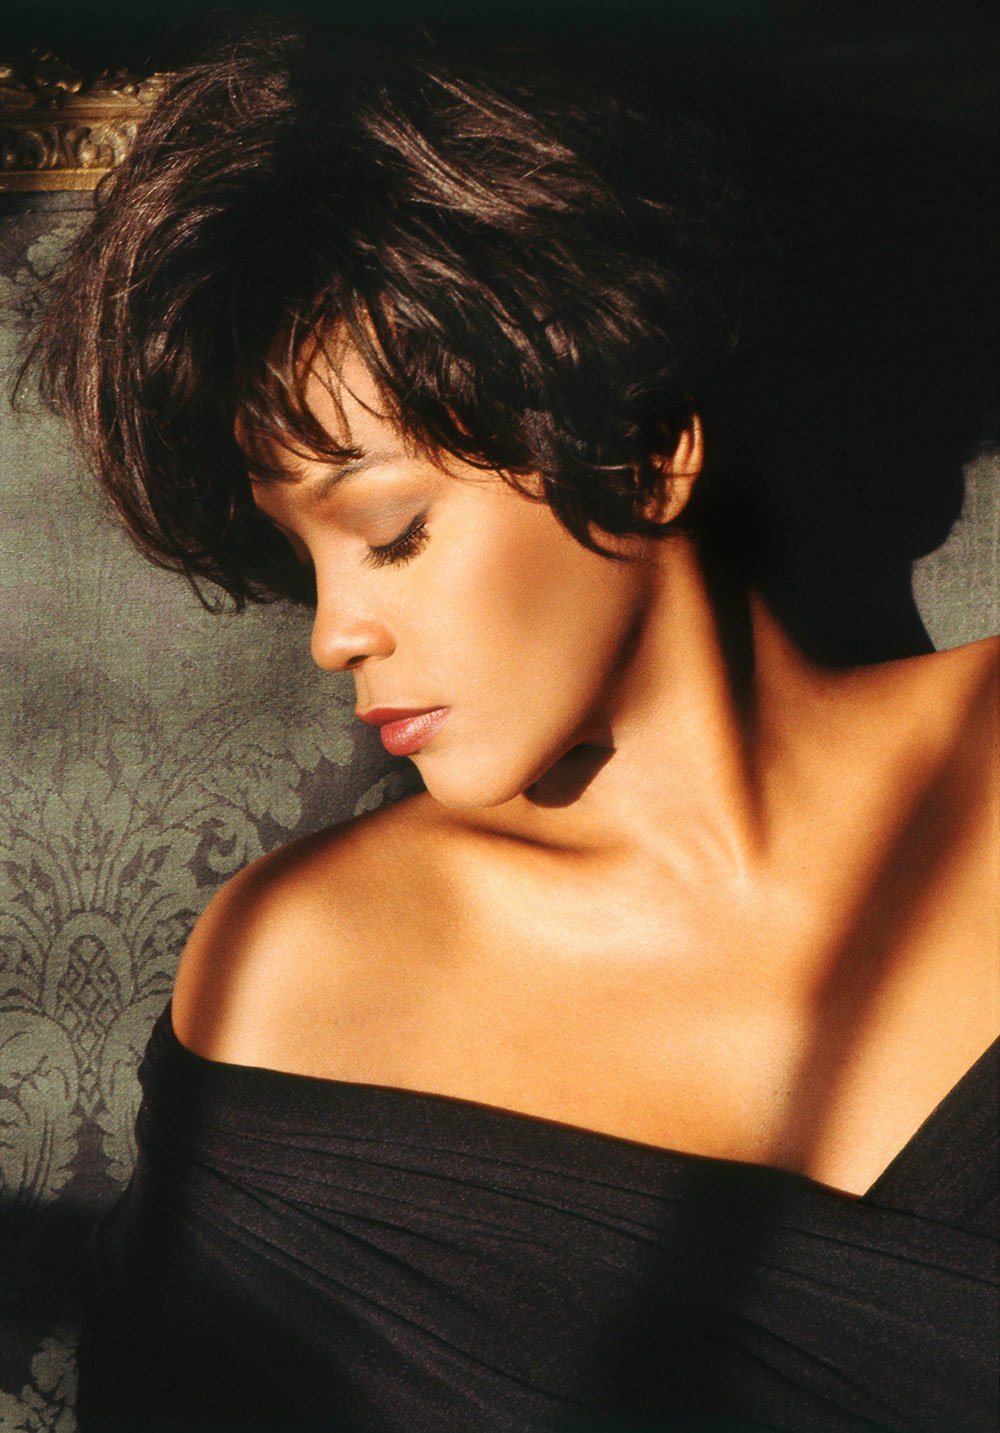 Whitney Houston The Bodyguard Soundtrack promotional photo by Randee St. Nicholas